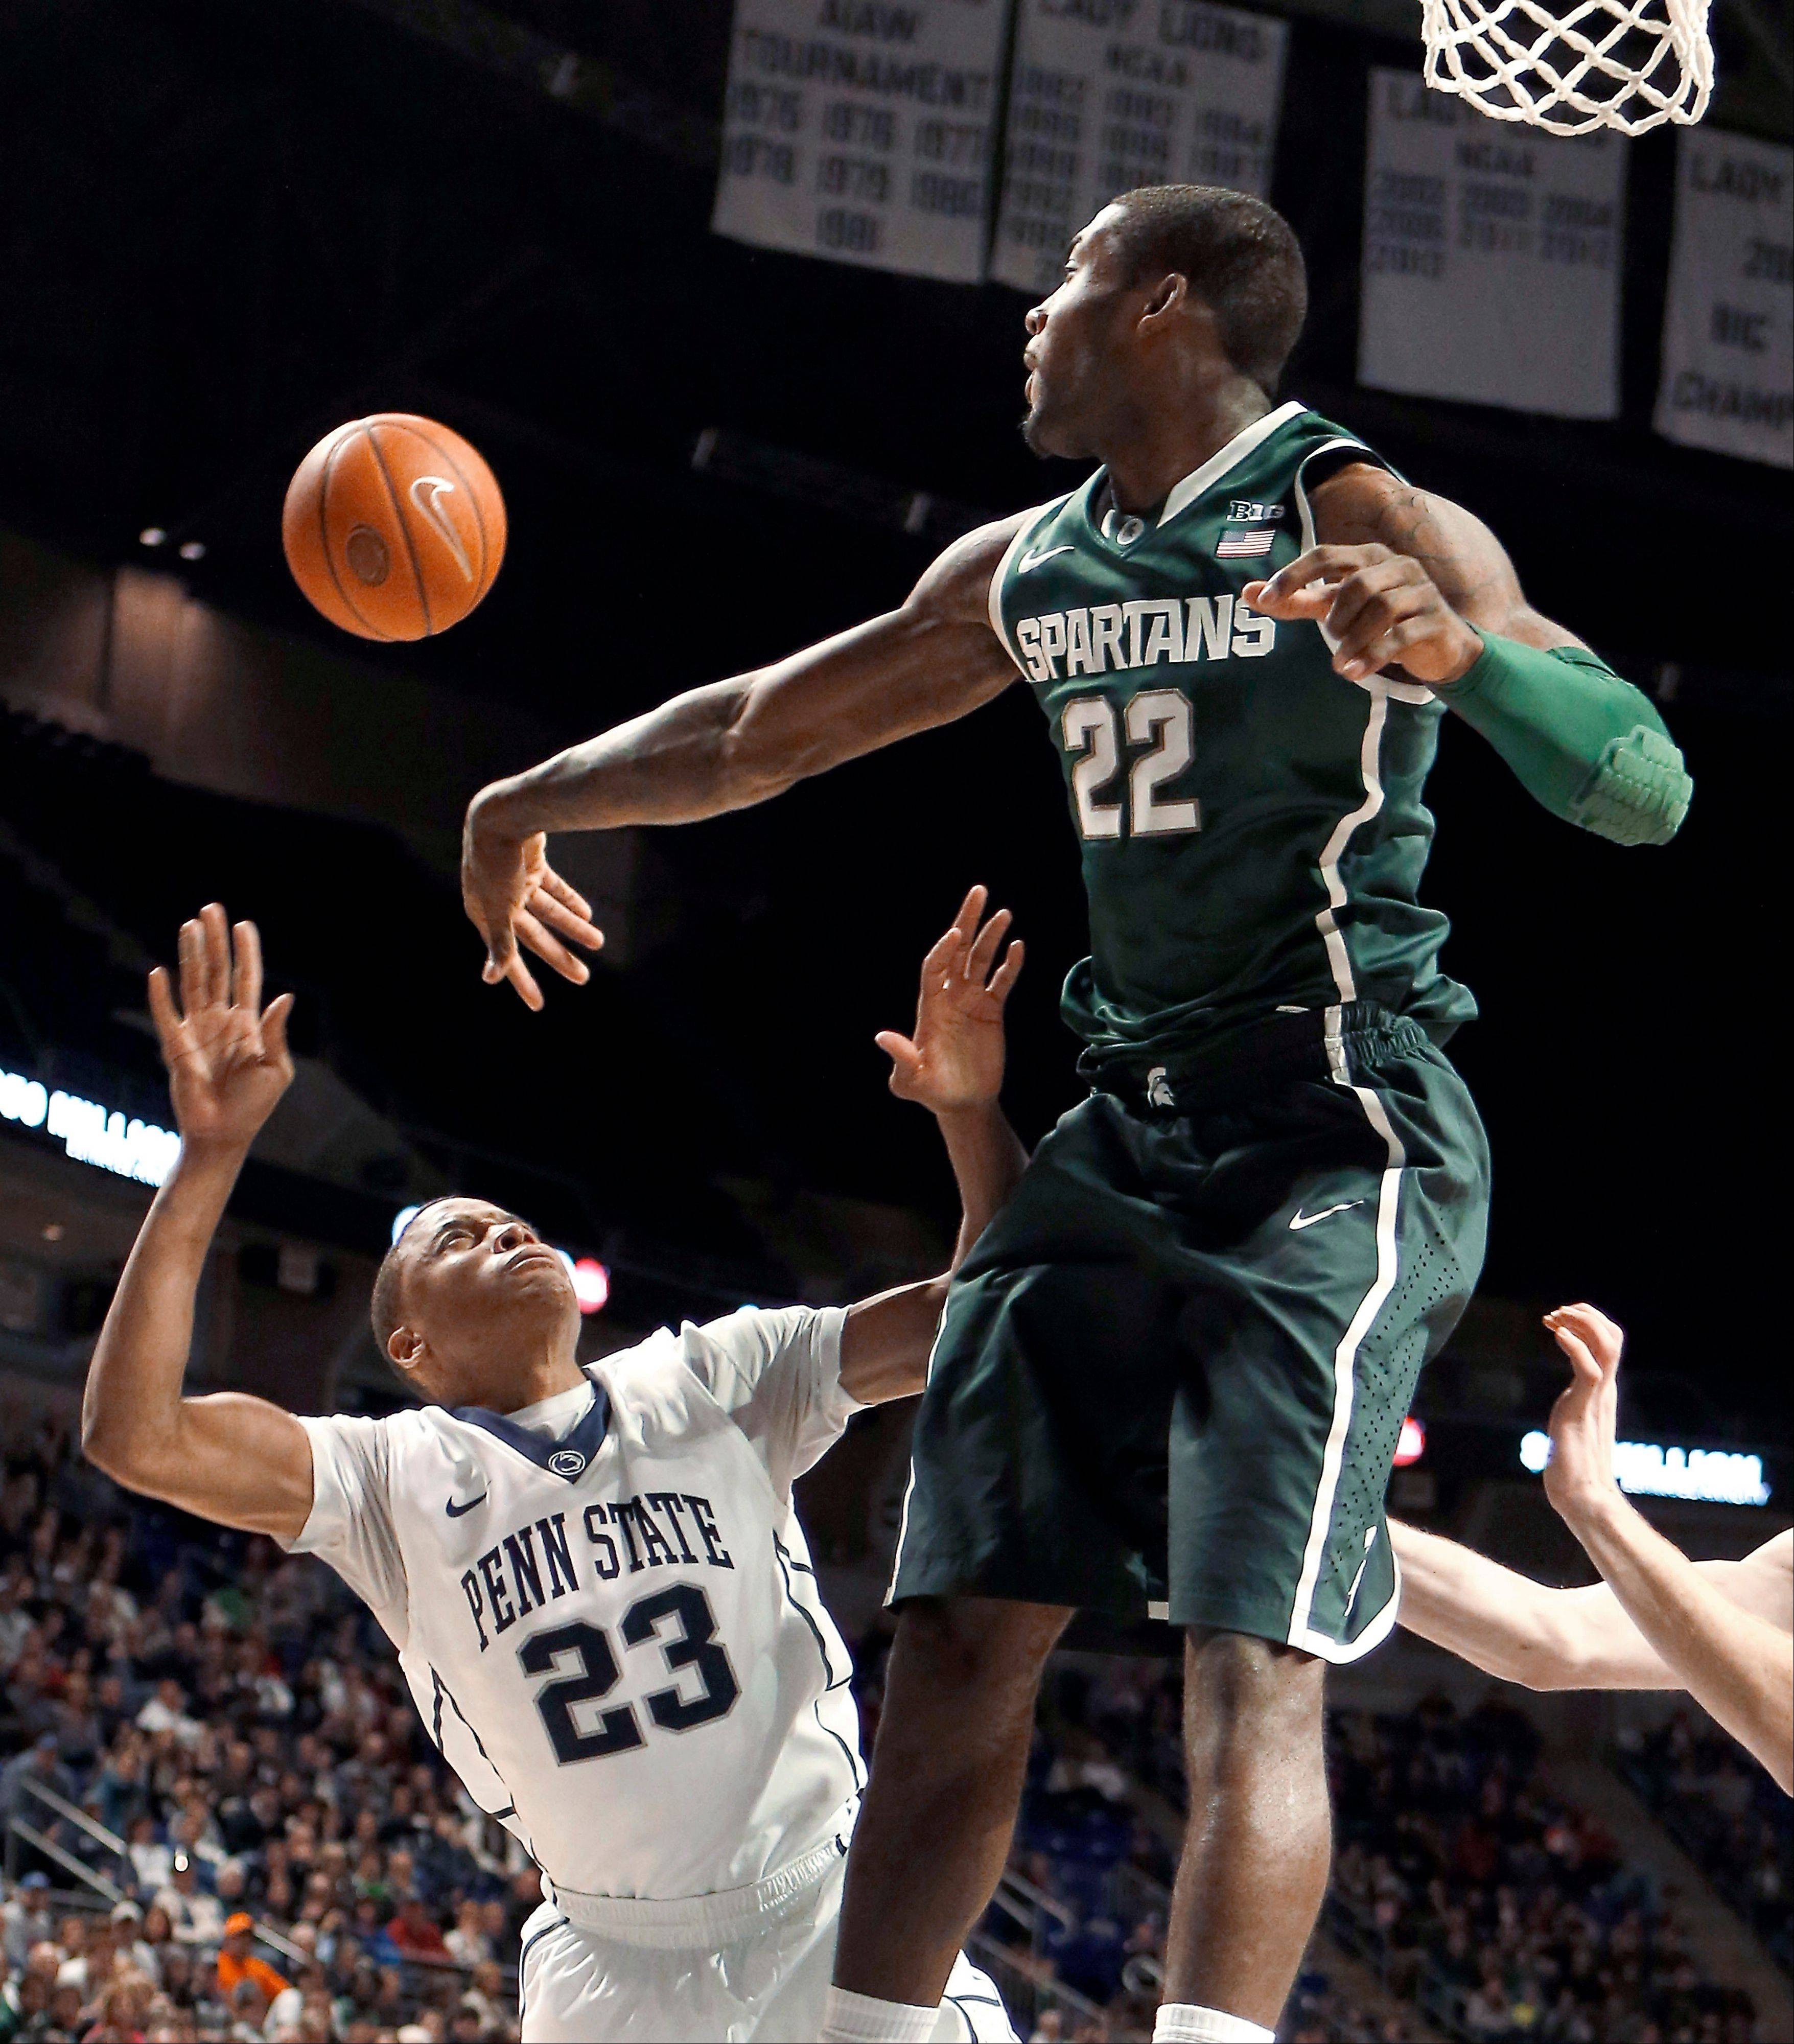 Michigan State�s Branden Dawson blocks a shot by Penn State�s Tim Frazier during the second half of Tuesday�s game in State College, Pa.